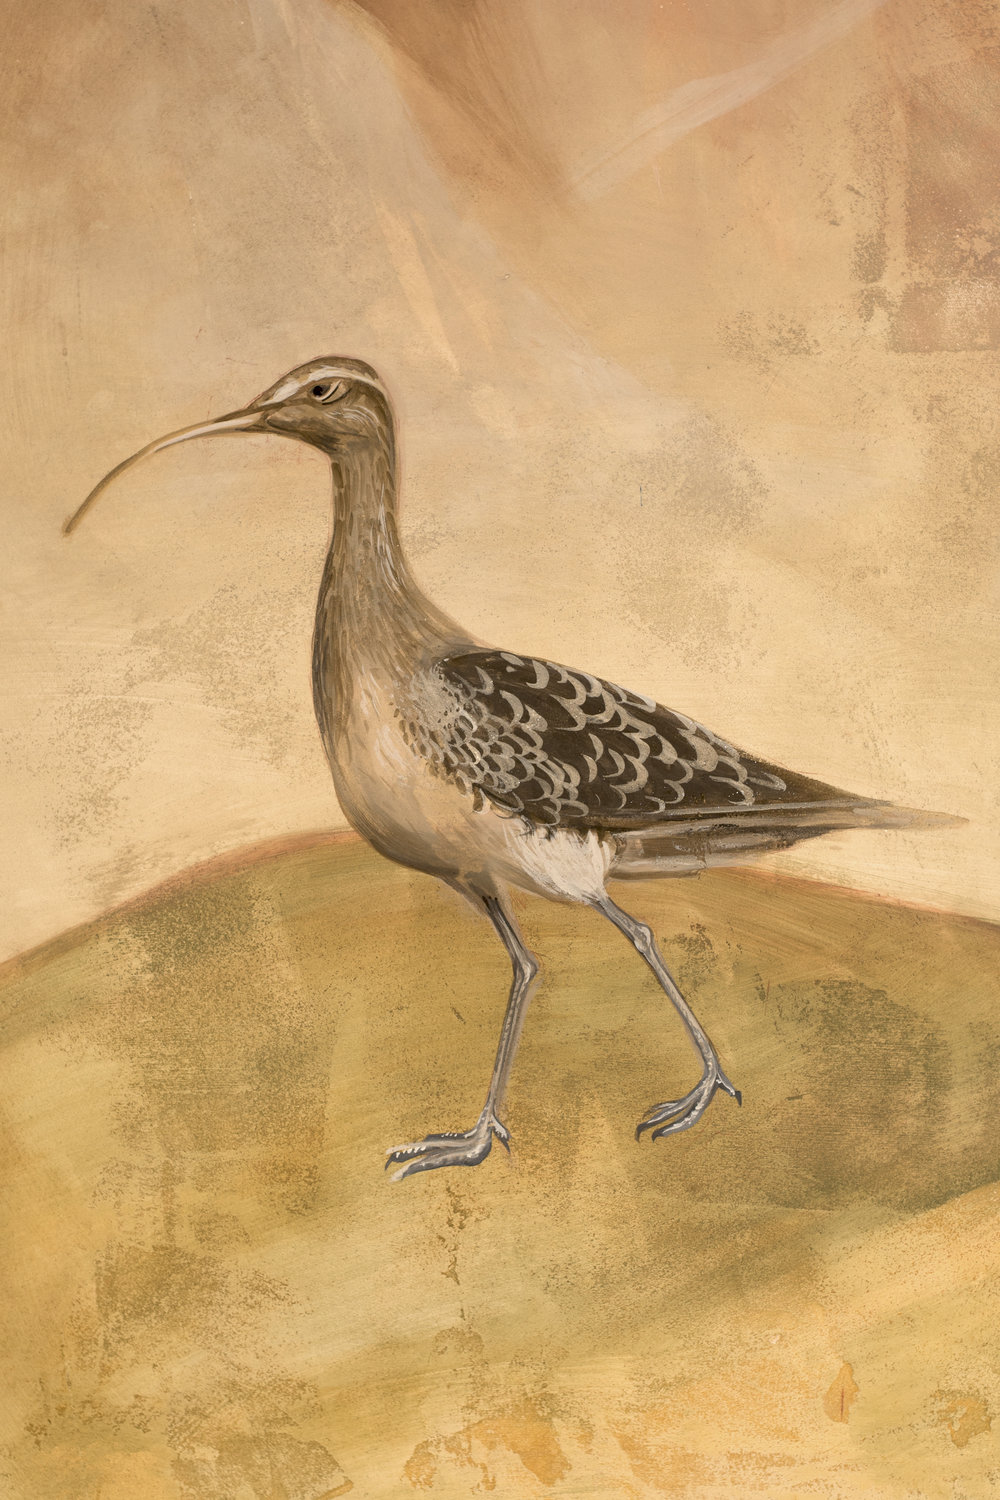 A curlew. Anyone who has roamed on the Moors around Lancashire will be familiar with its haunting call.